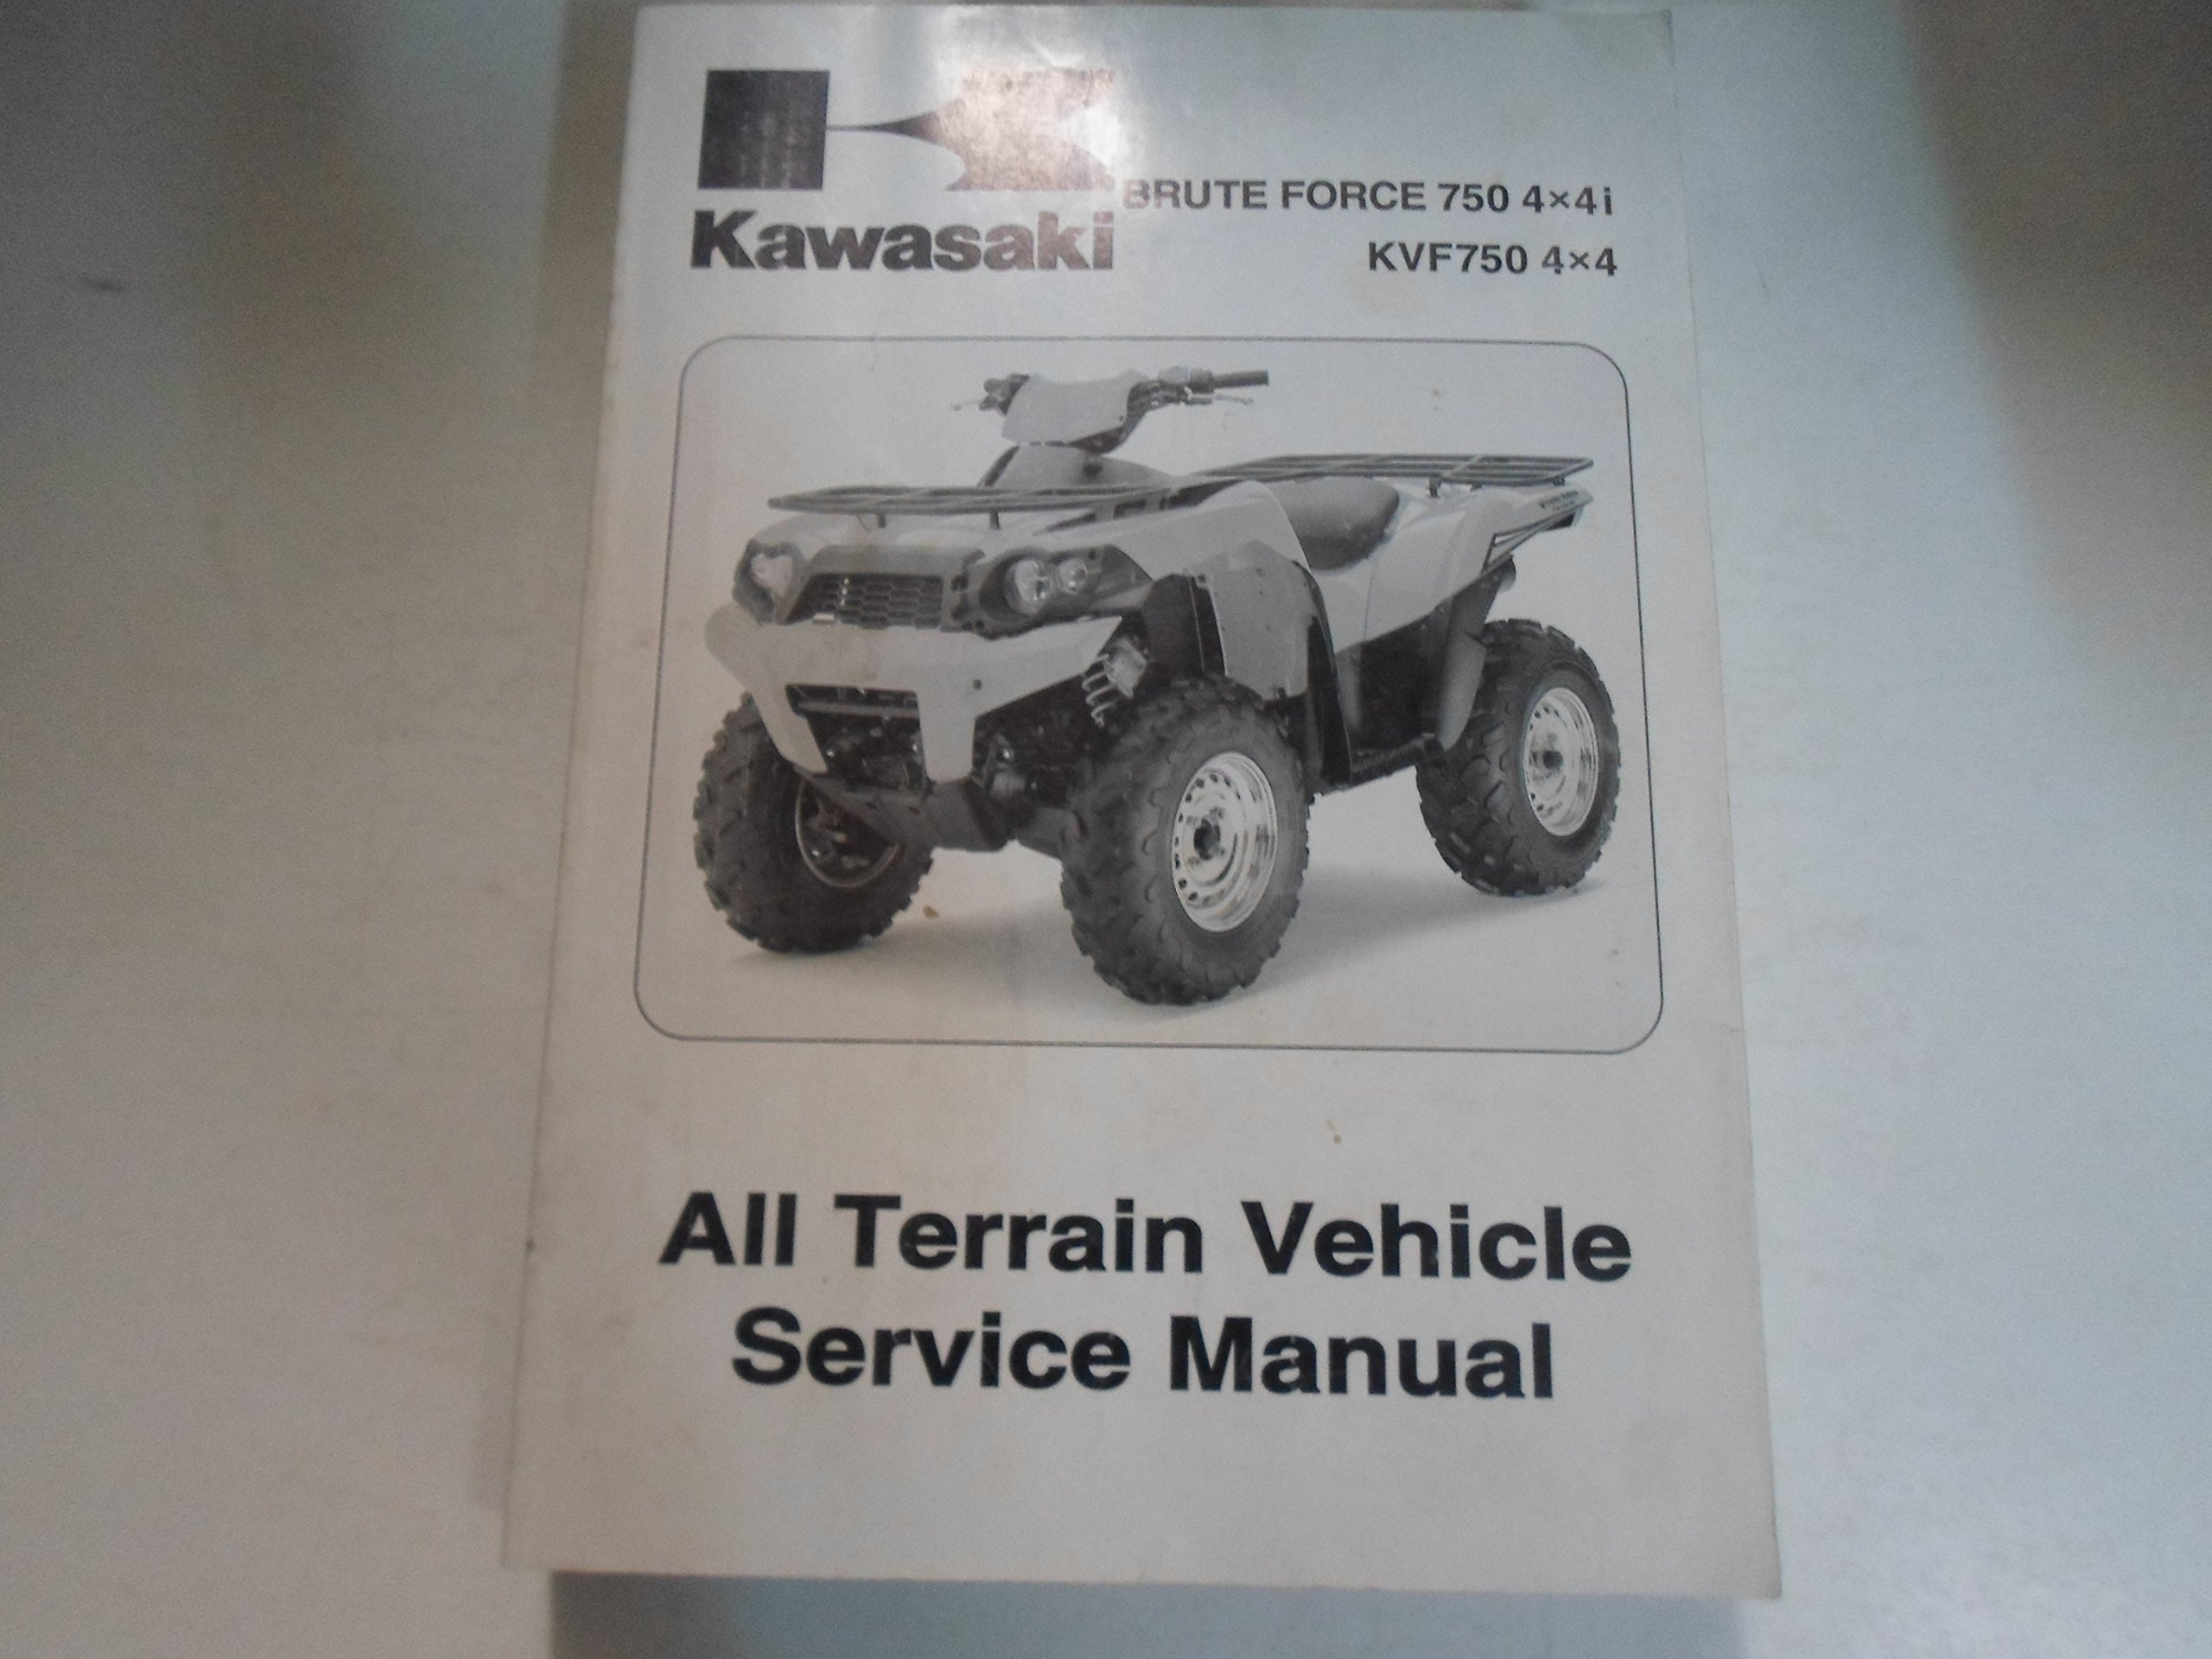 2008 Kawasaki Brute Force 750 4x4i KVF750 4x4 ATV Service Repair Manual  STAINED Paperback – 2007